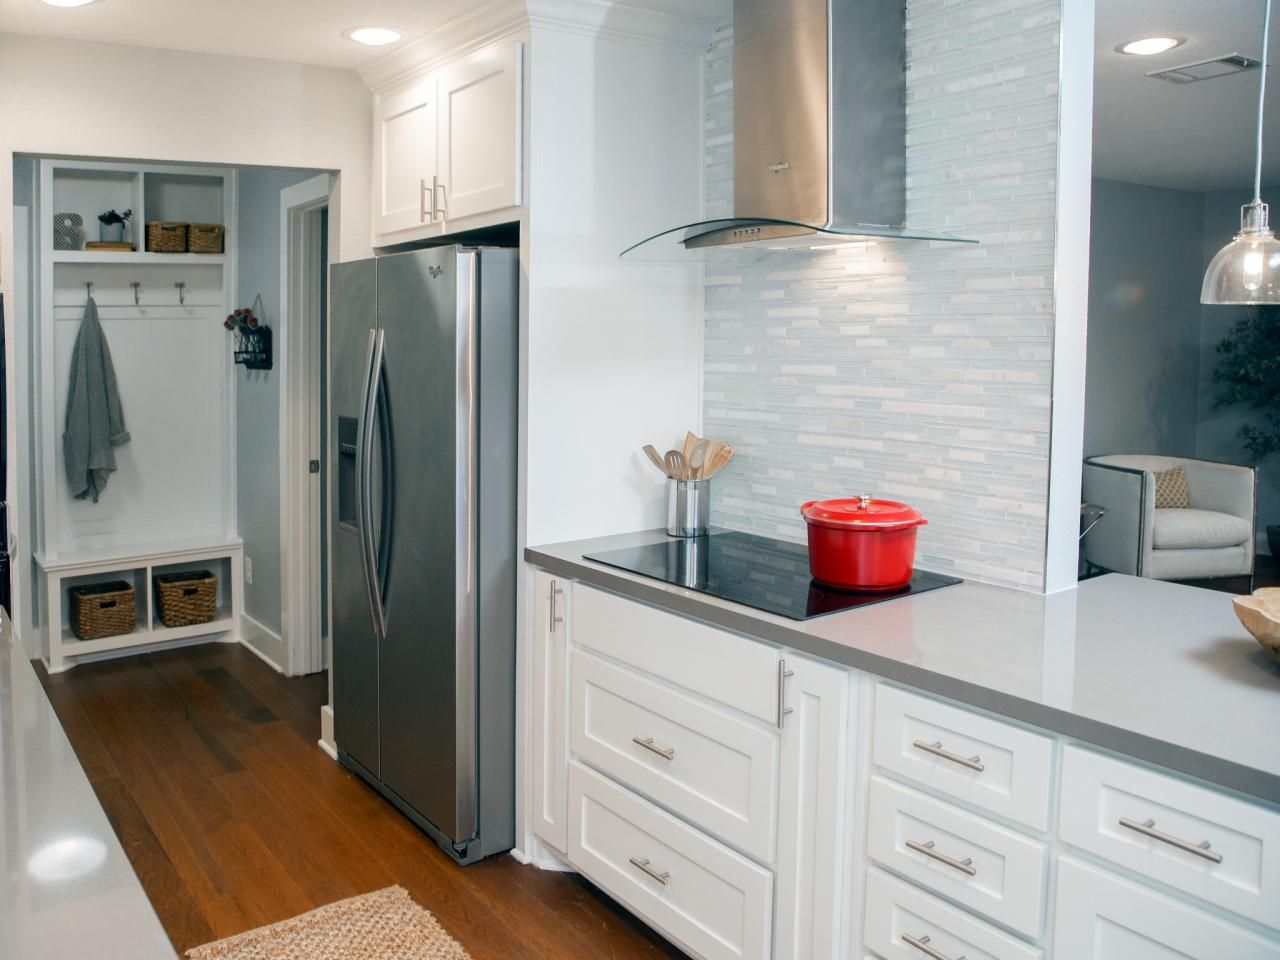 Fixer upper kitchen faucet - Fixer Upper The Raggedy Ranch And The Rocket Scientist